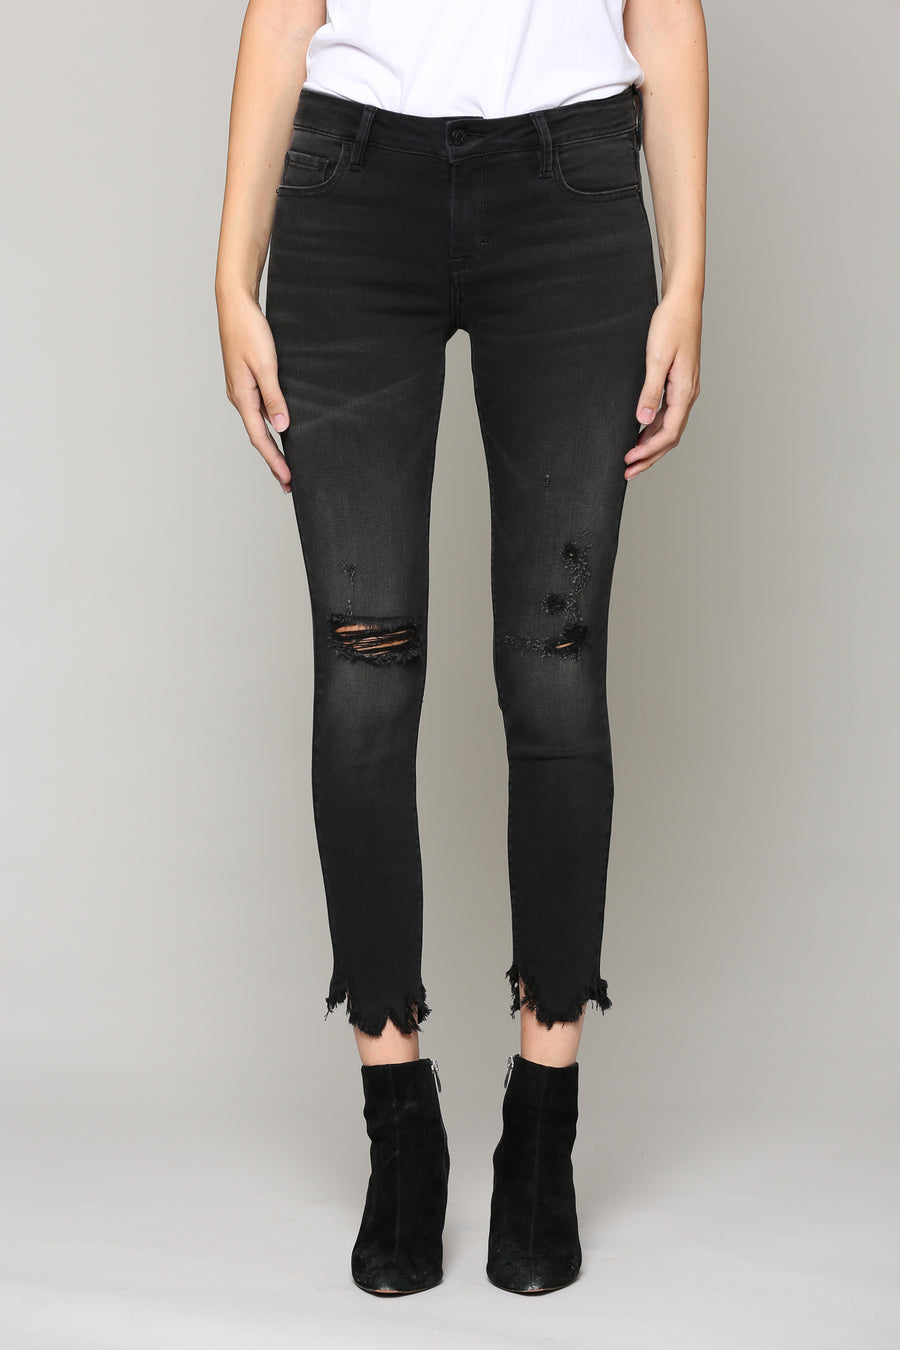 AMELIA <p/> BLACK WASH FRAYED HEM SKINNY